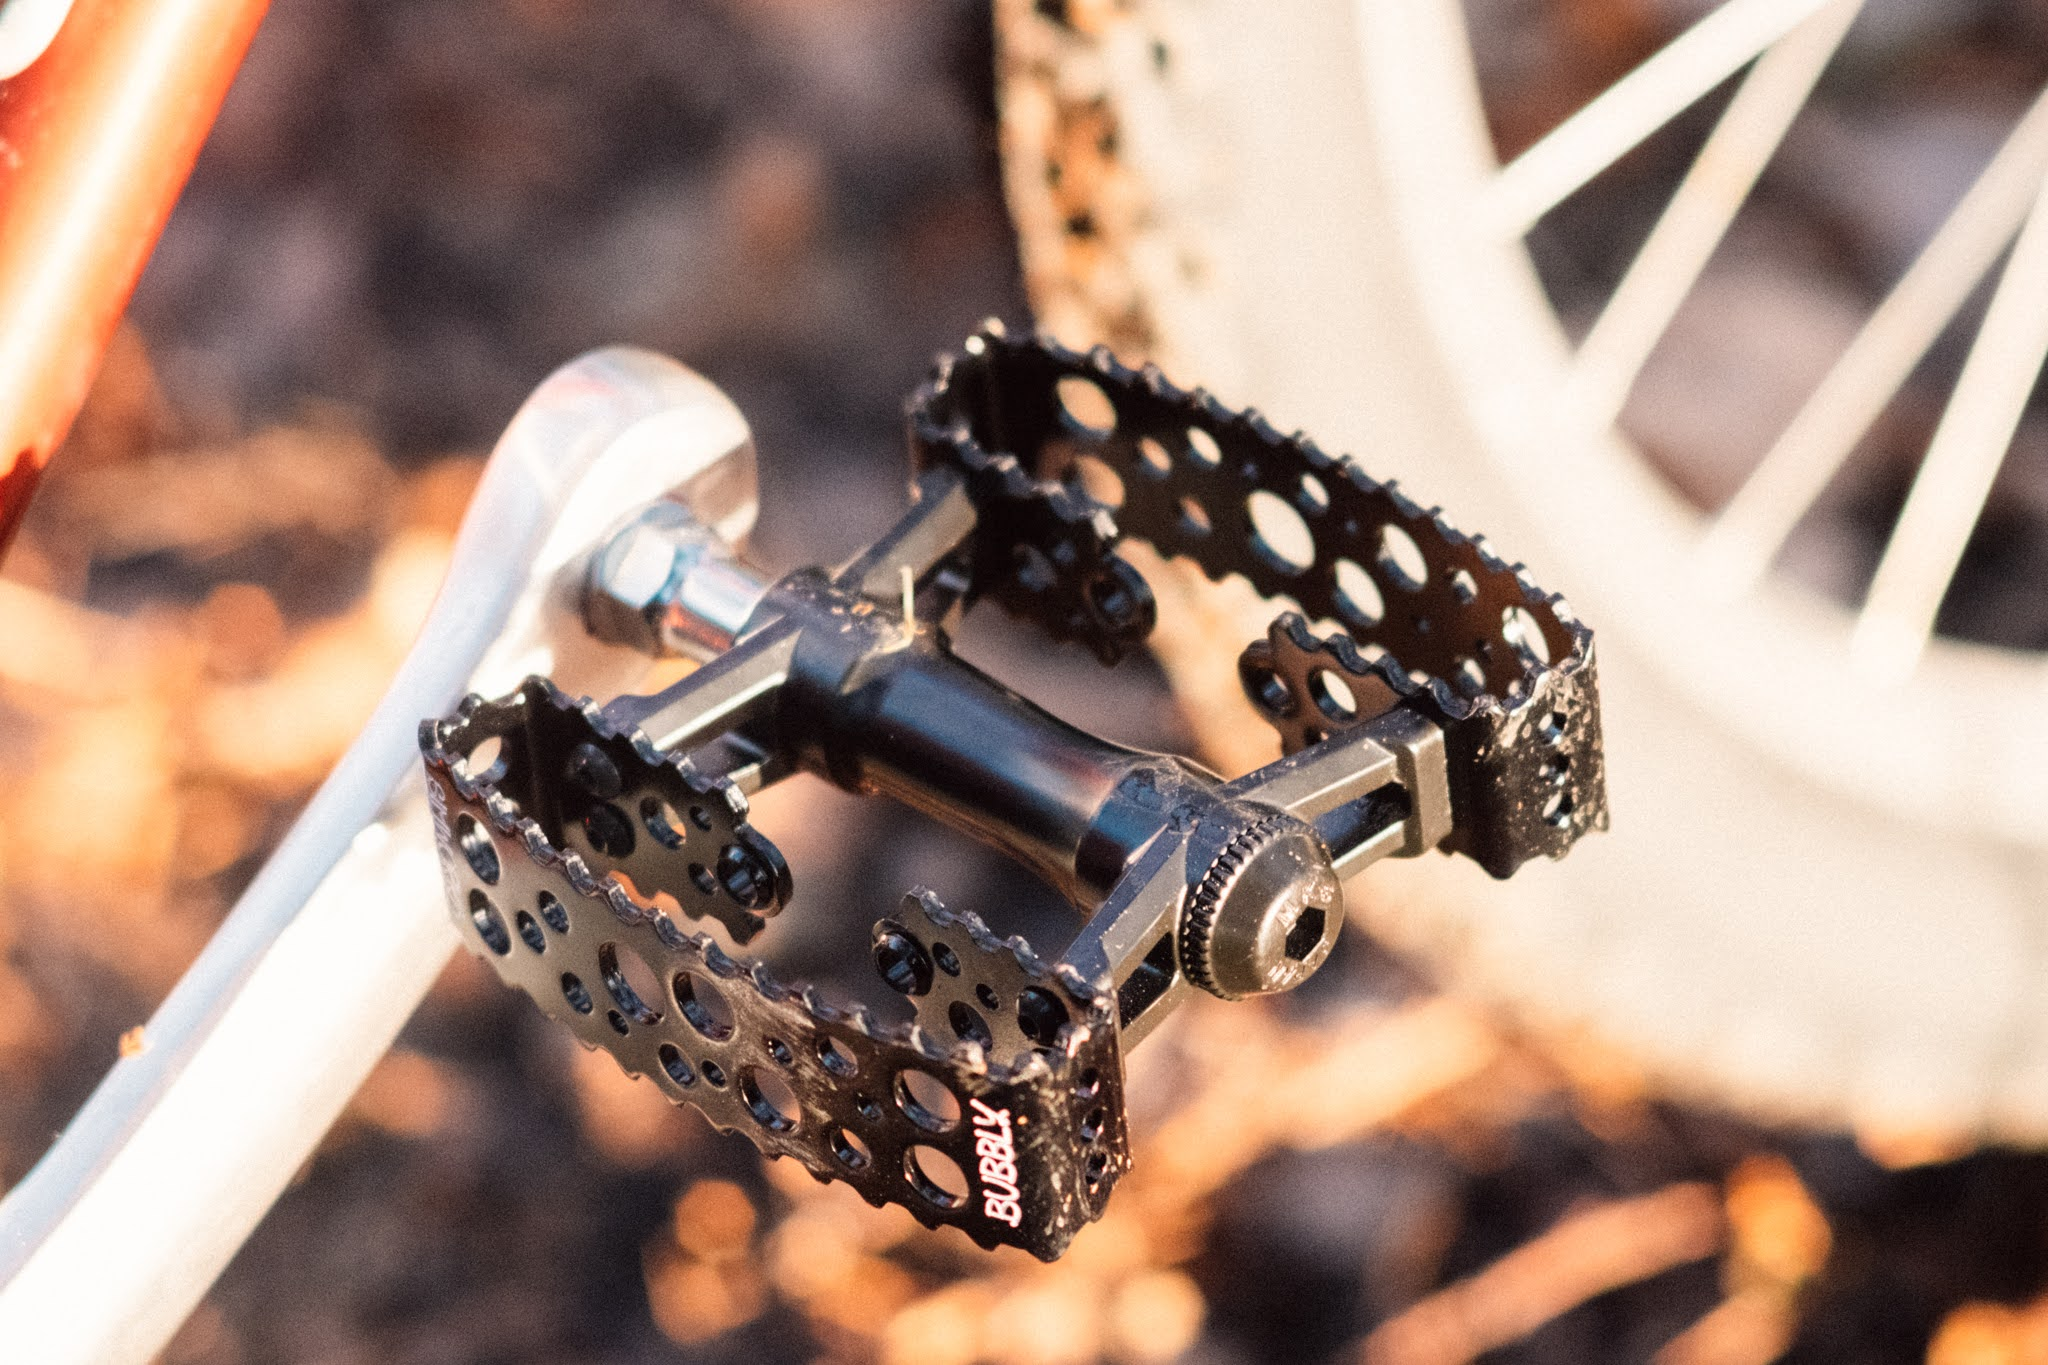 SimWorks Bubbly pedals MKS